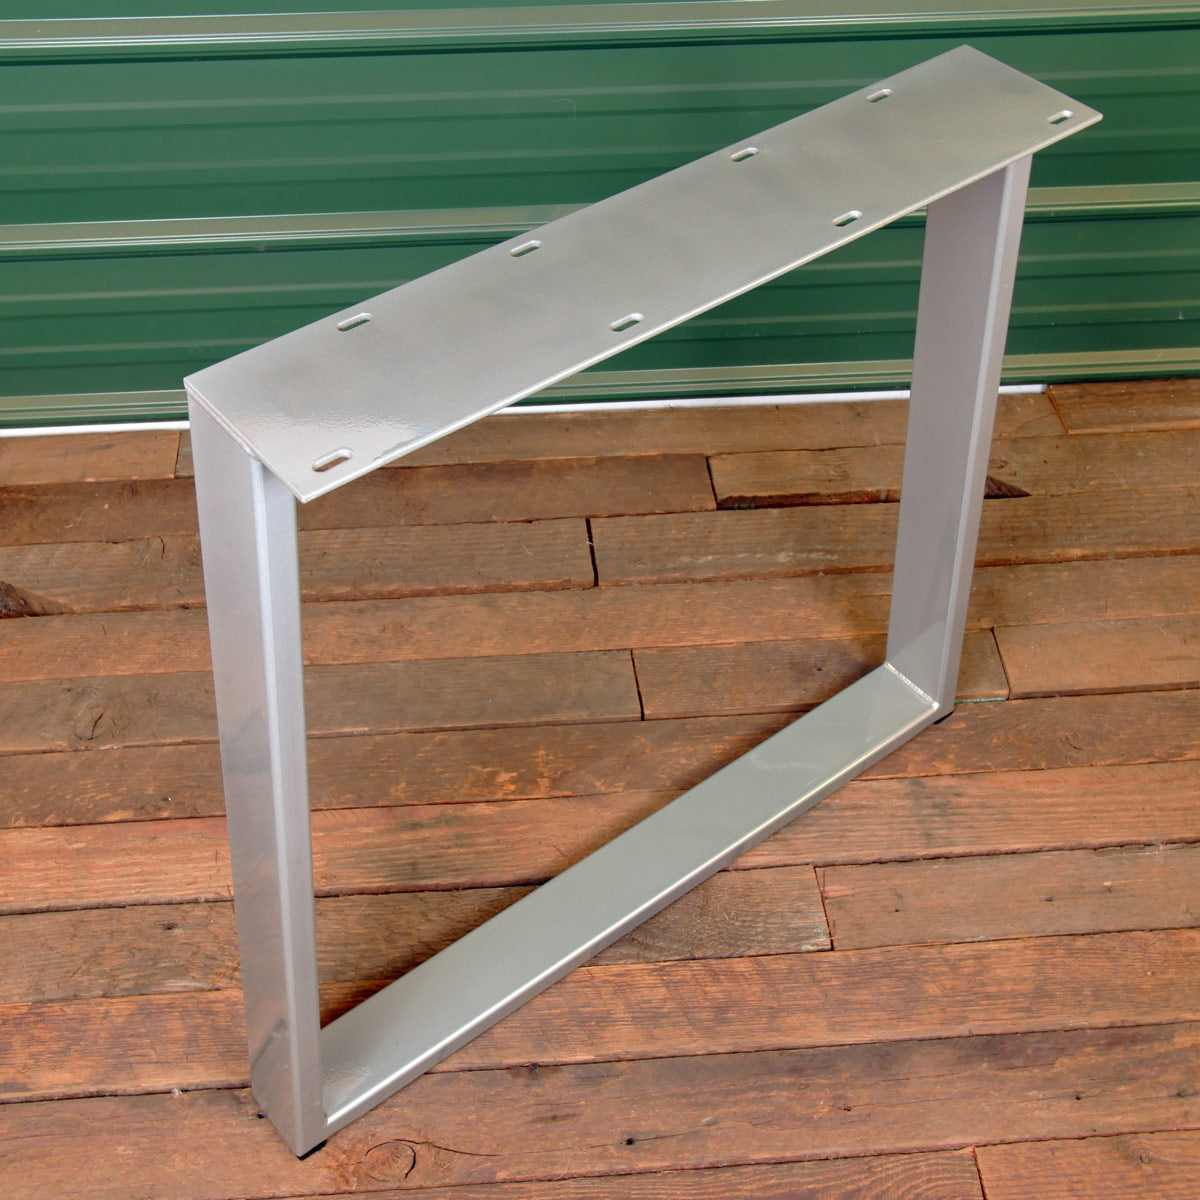 Metal dining table leg finished with silver powder coat